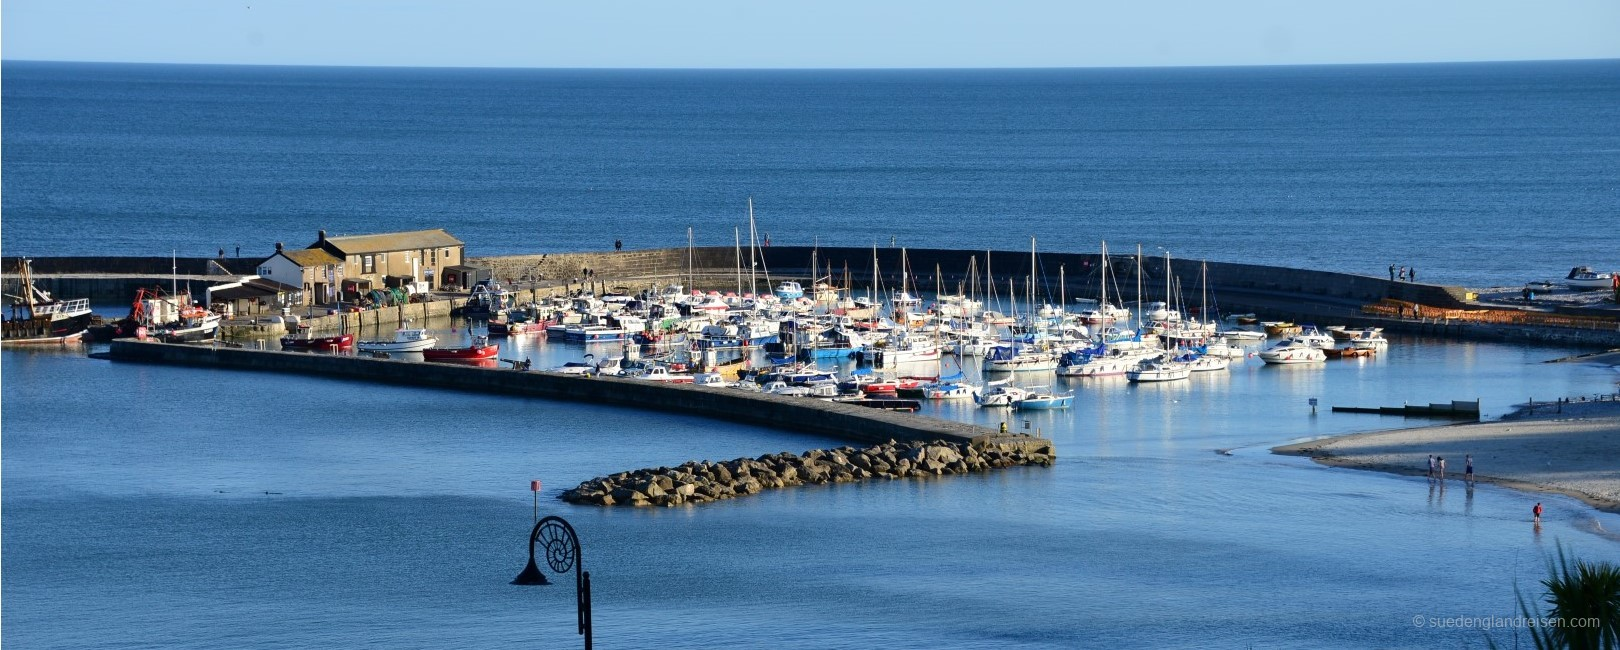 Lyme Regis on the English Channel